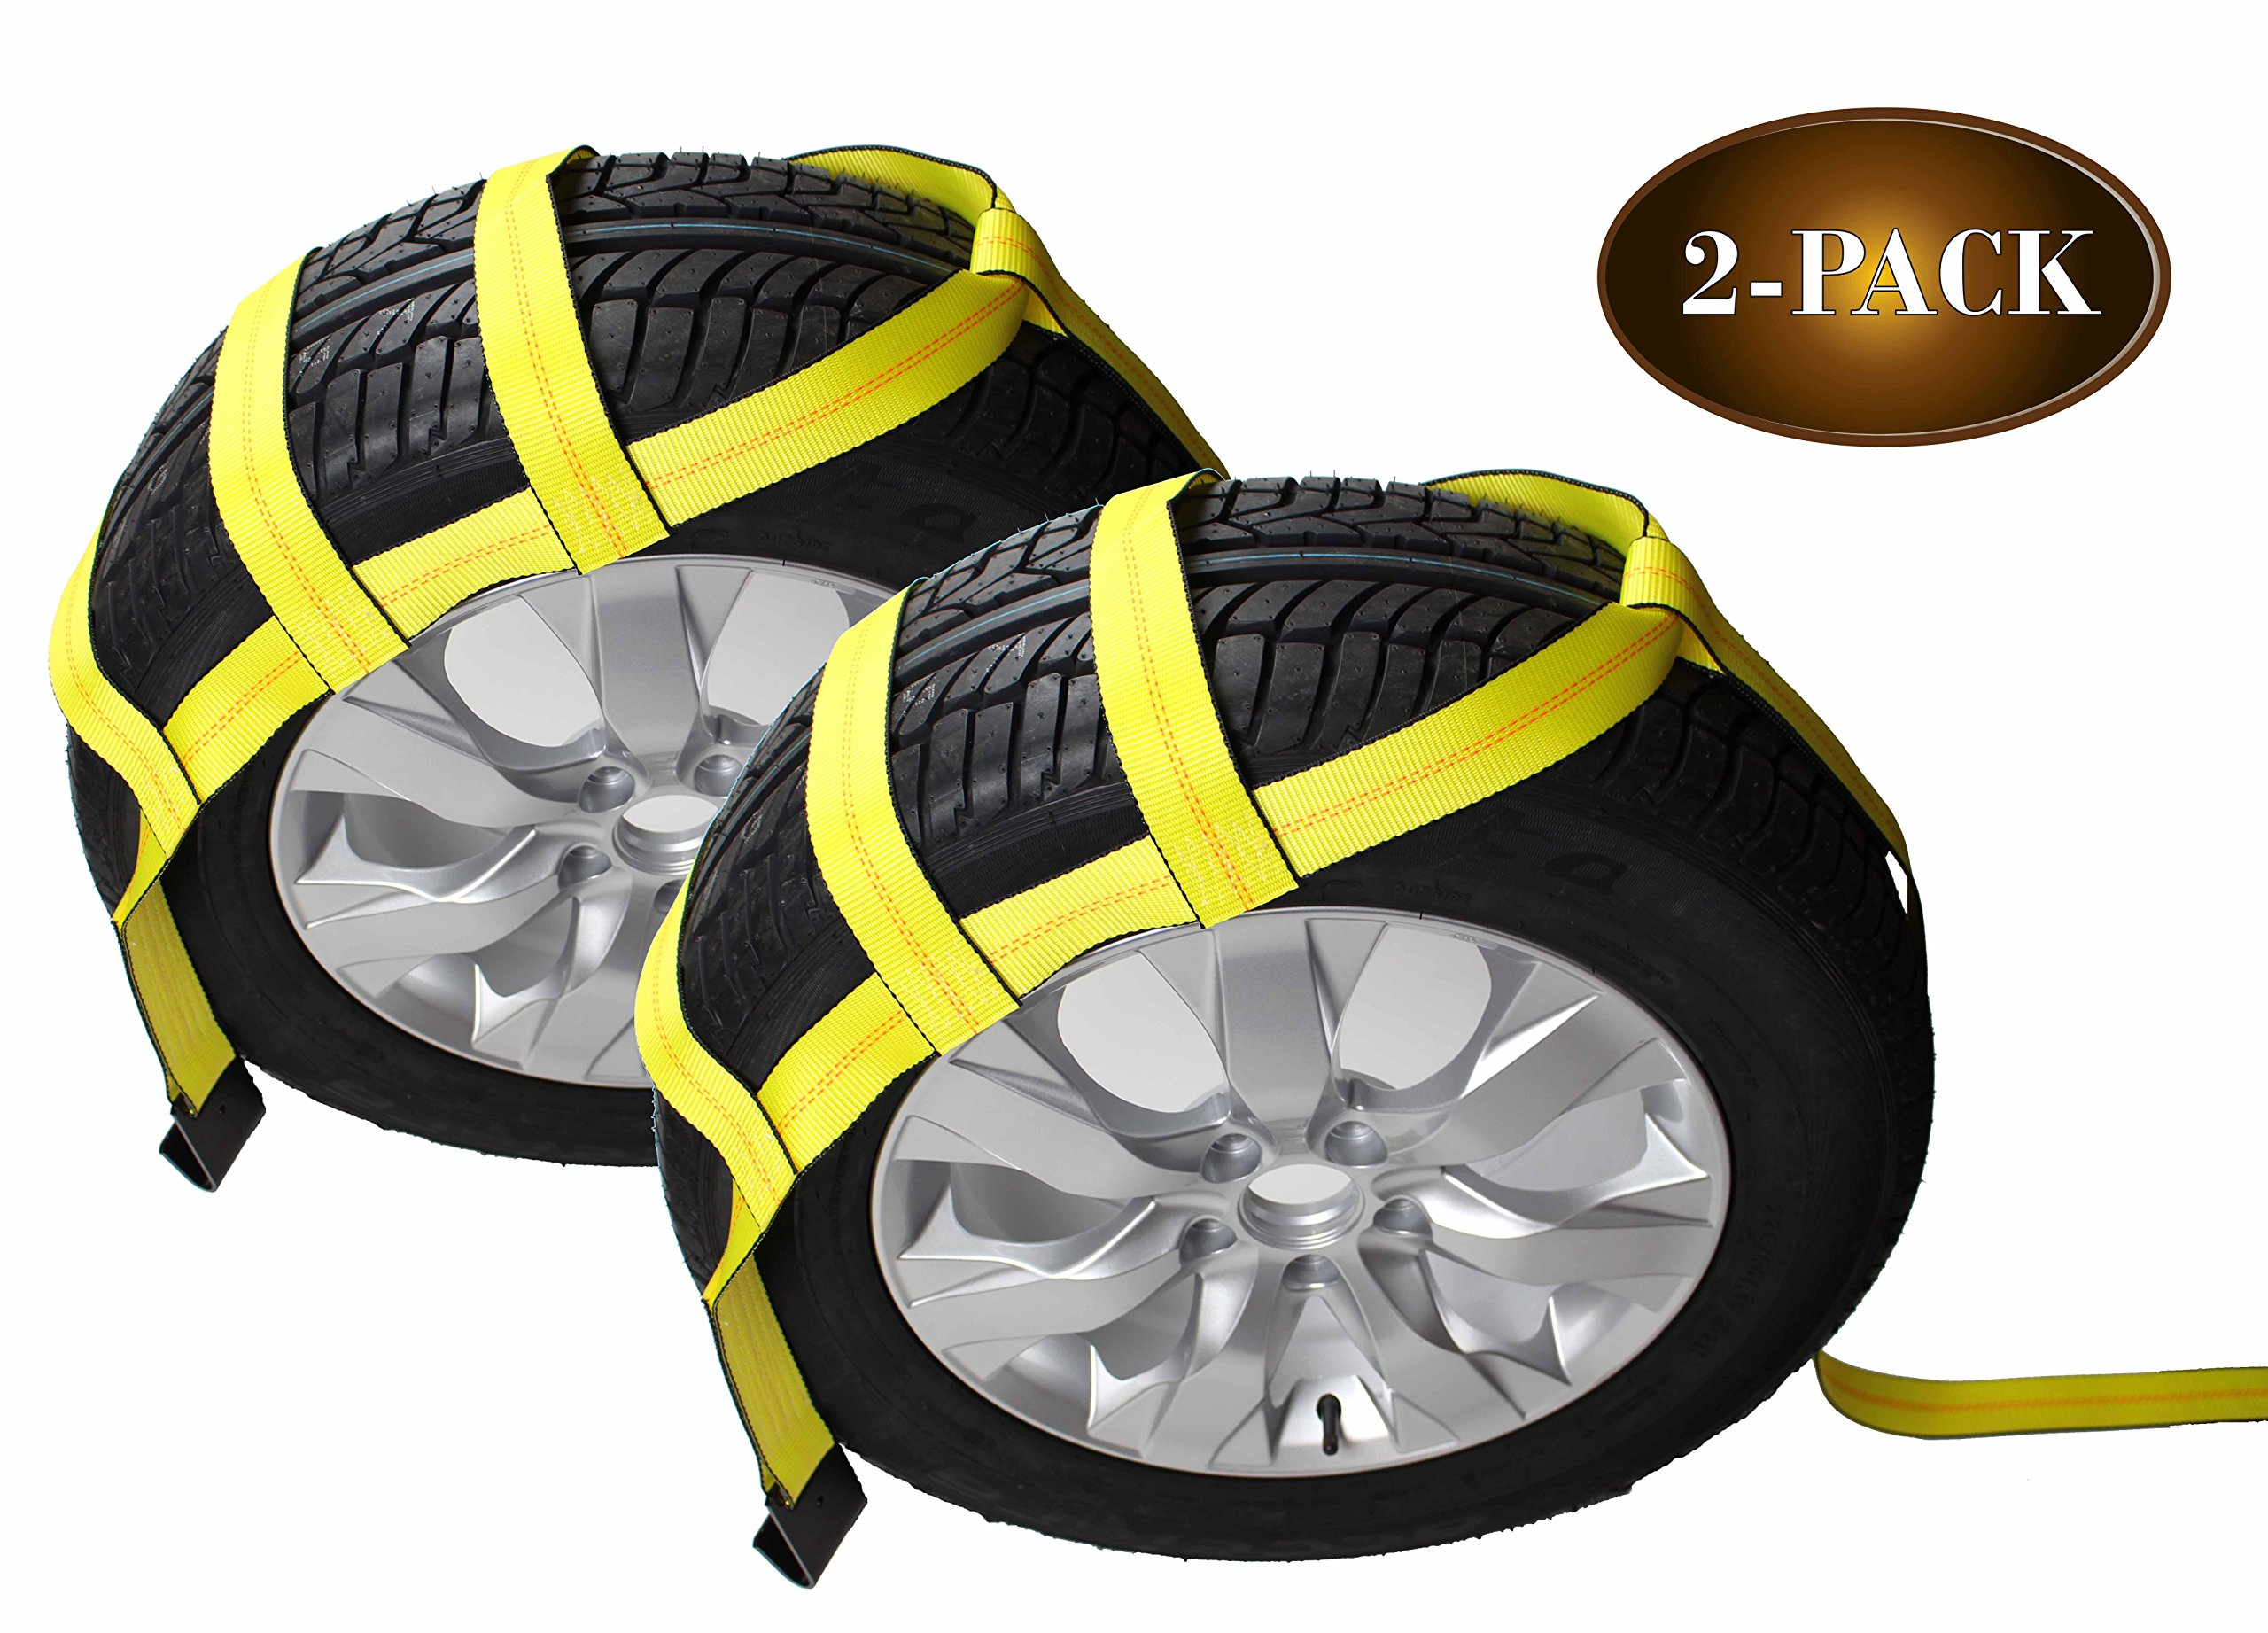 DC Cargo Mall Tow Dolly Basket Straps with Flat Hooks | 2-Pack | Car Wheel Straps for Auto Hauling by DC Cargo Mall